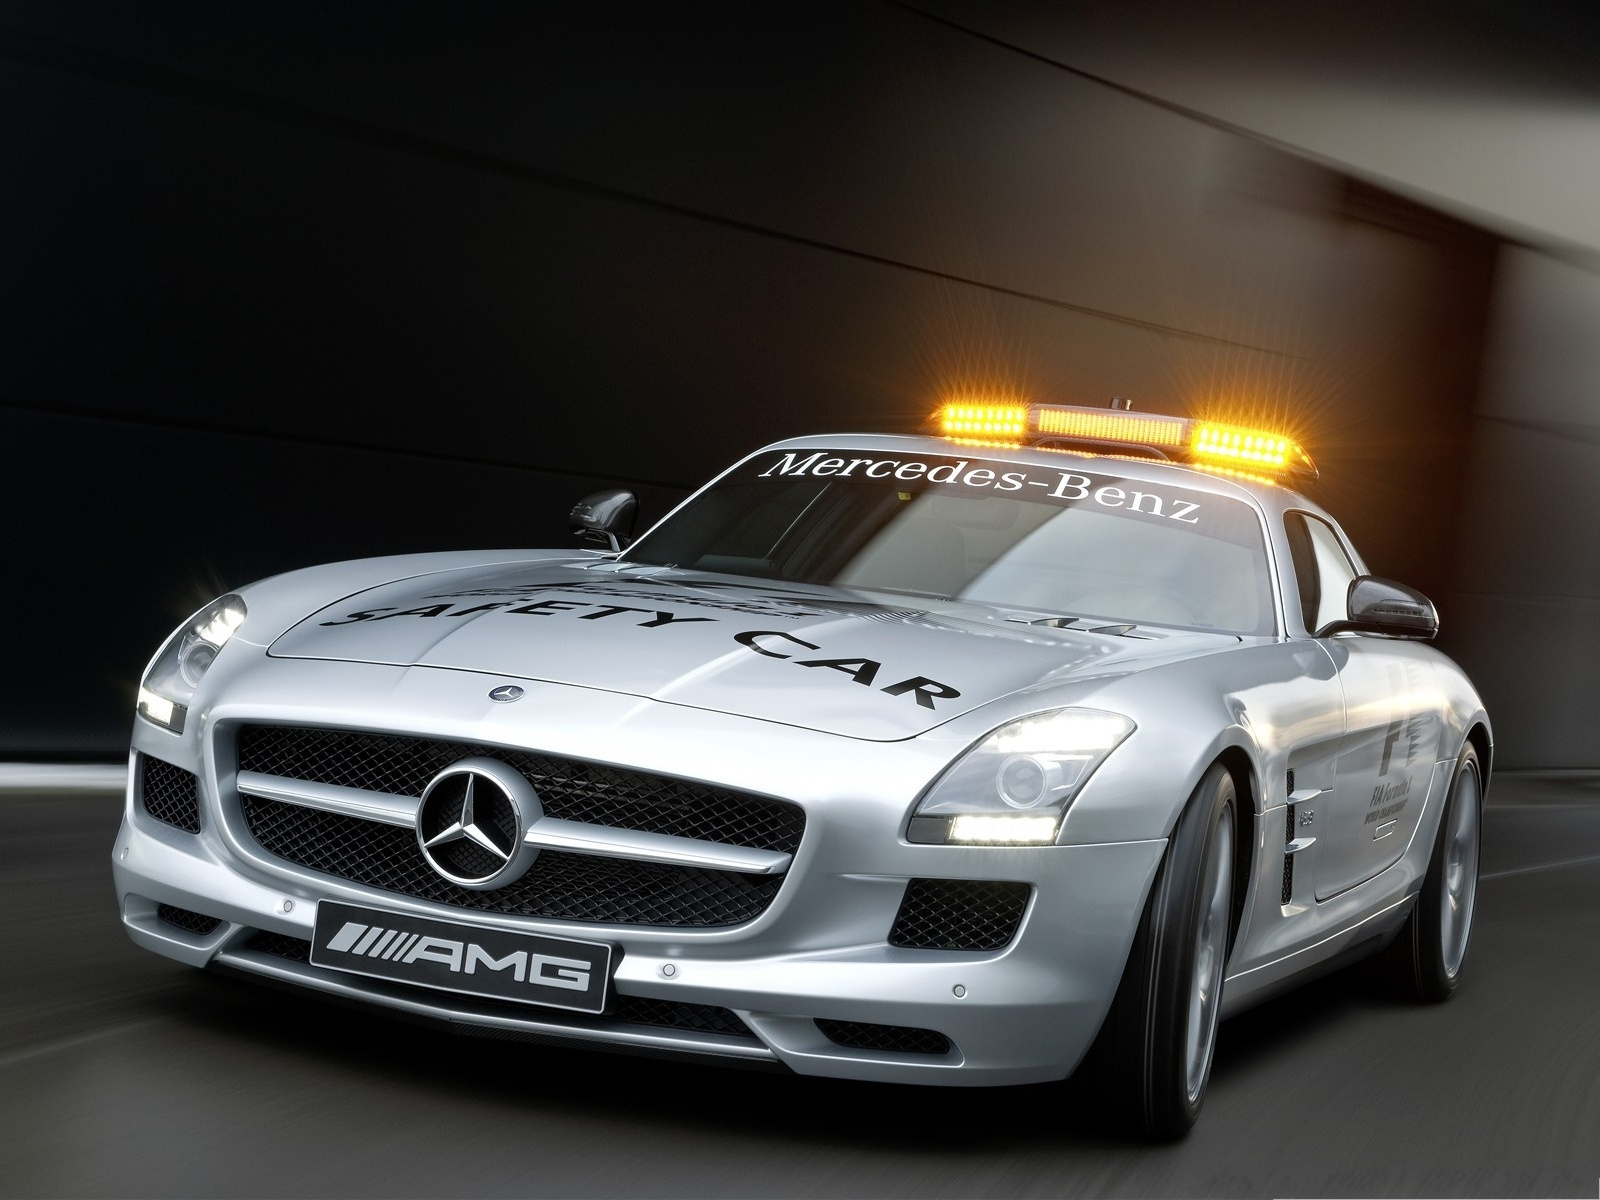 click to free download the wallpaper--Mercedes Benz SLS Wallpaper, Silver Safety Car, Golden Lights Above 1600X1200 free wallpaper download